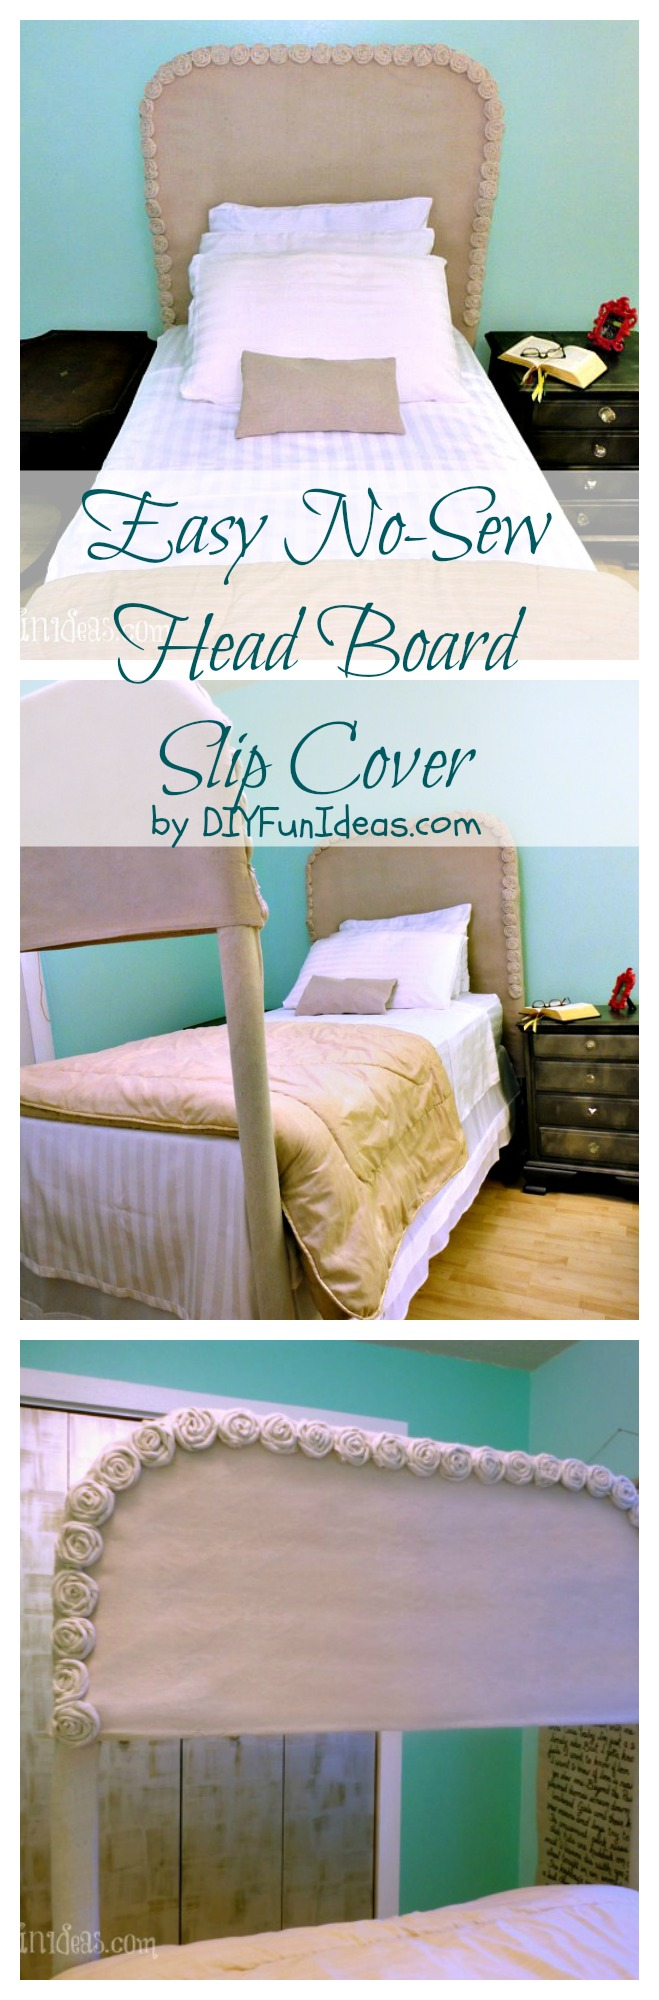 DIY No-sew drop cloth rosette headboard slip cover